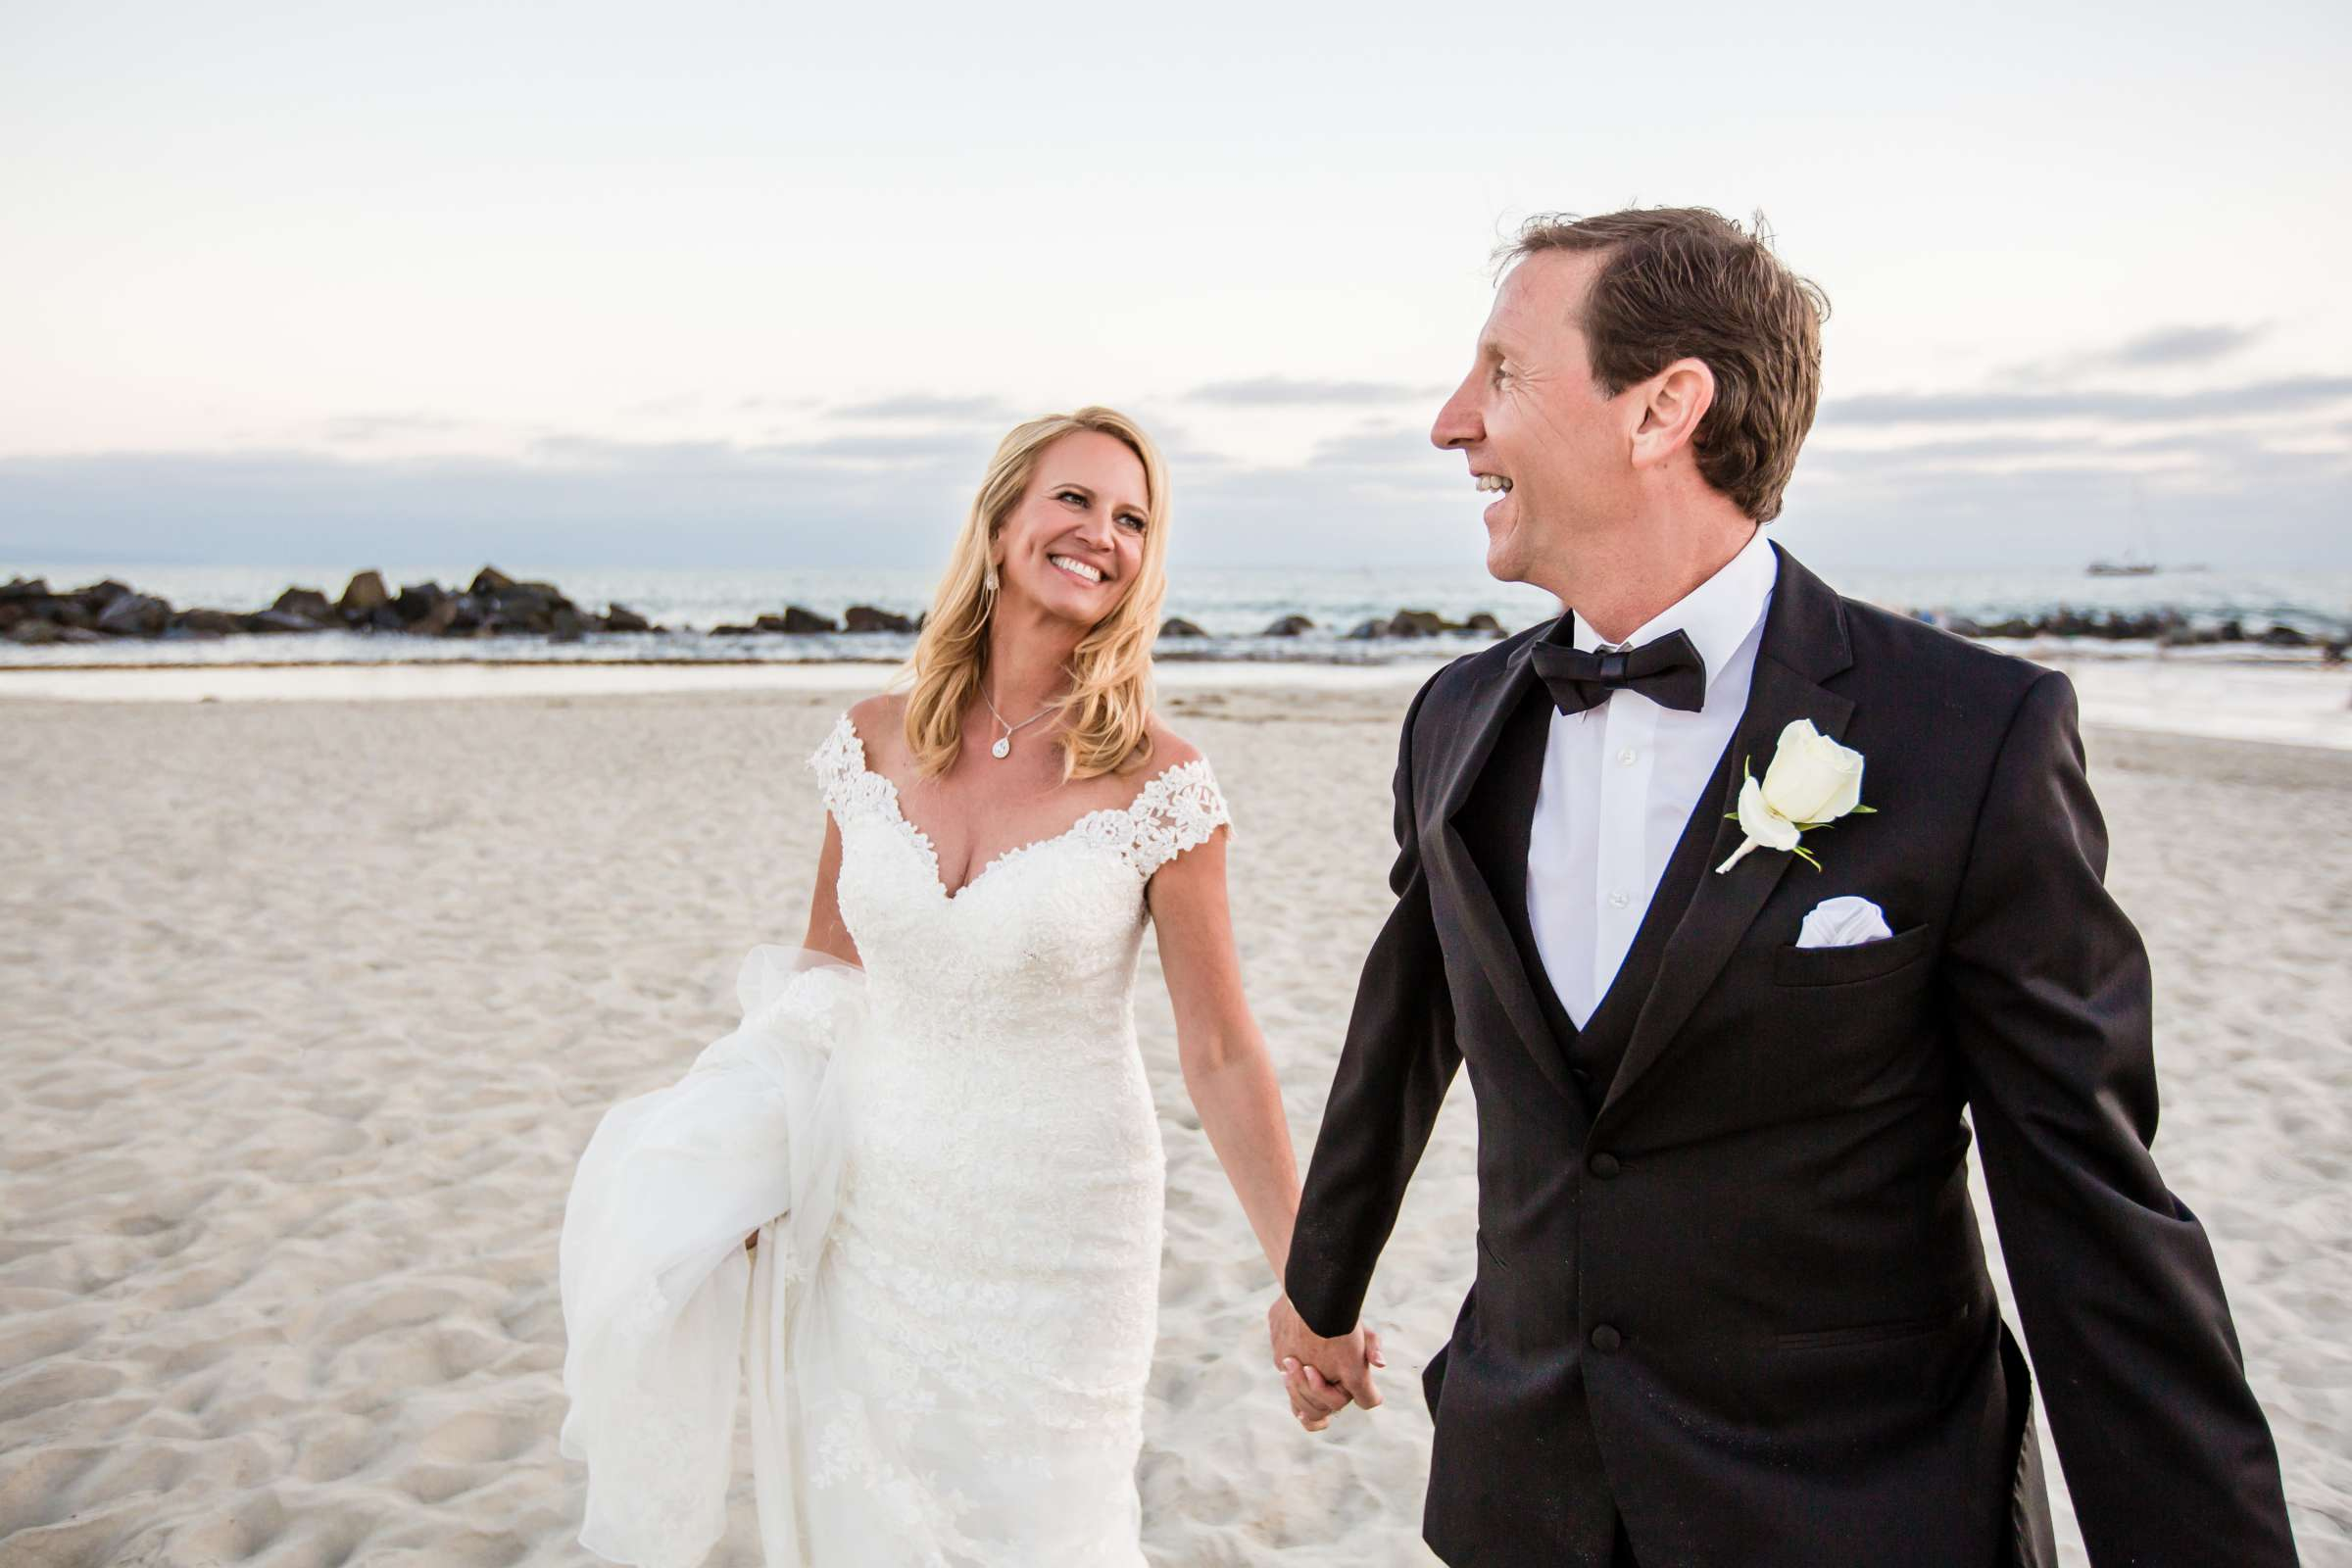 Hotel Del Coronado Wedding coordinated by Creative Affairs Inc, Diane and Paul Wedding Photo #12 by True Photography